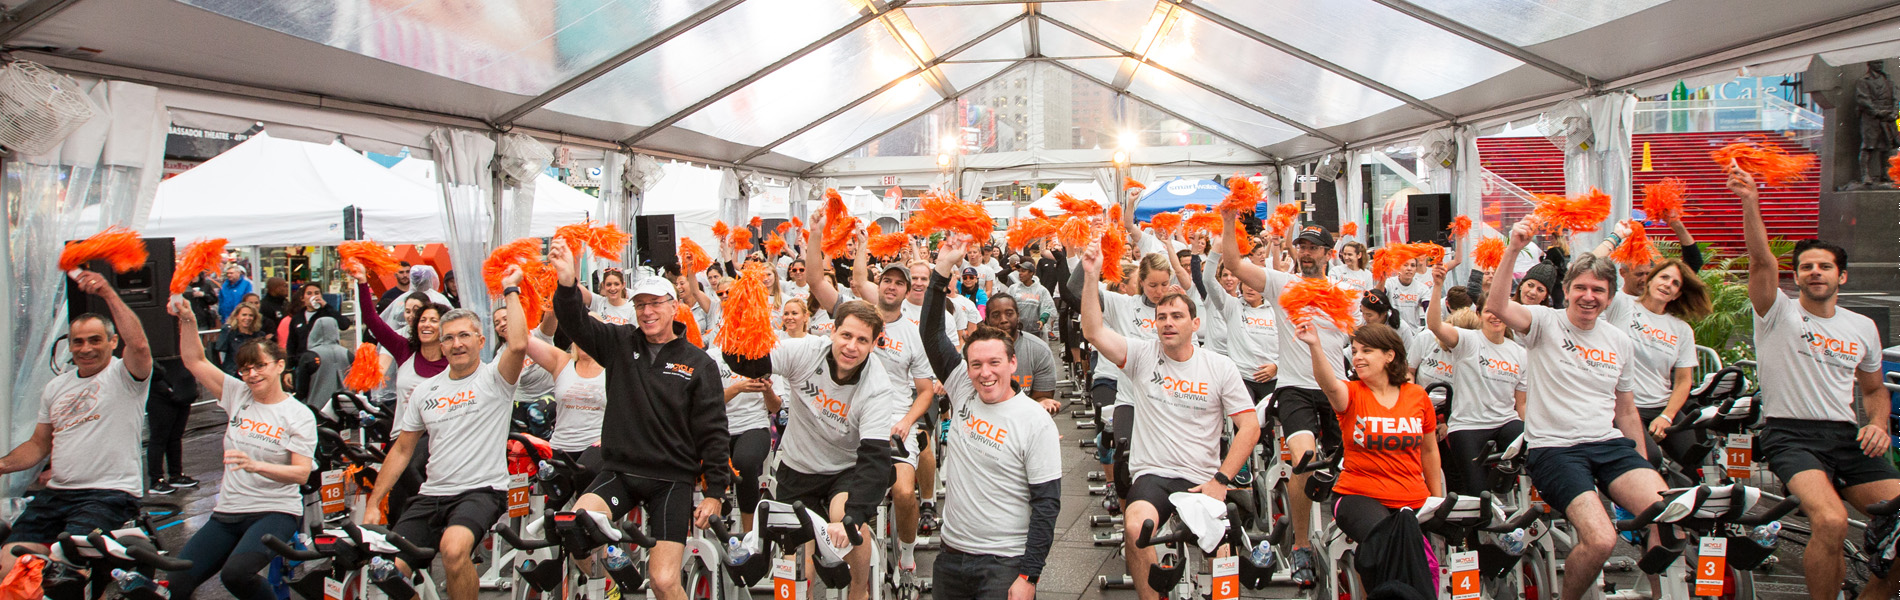 9b40d8b7c Cycle for survival launches 2017 battle to beat rare cancers  over ...